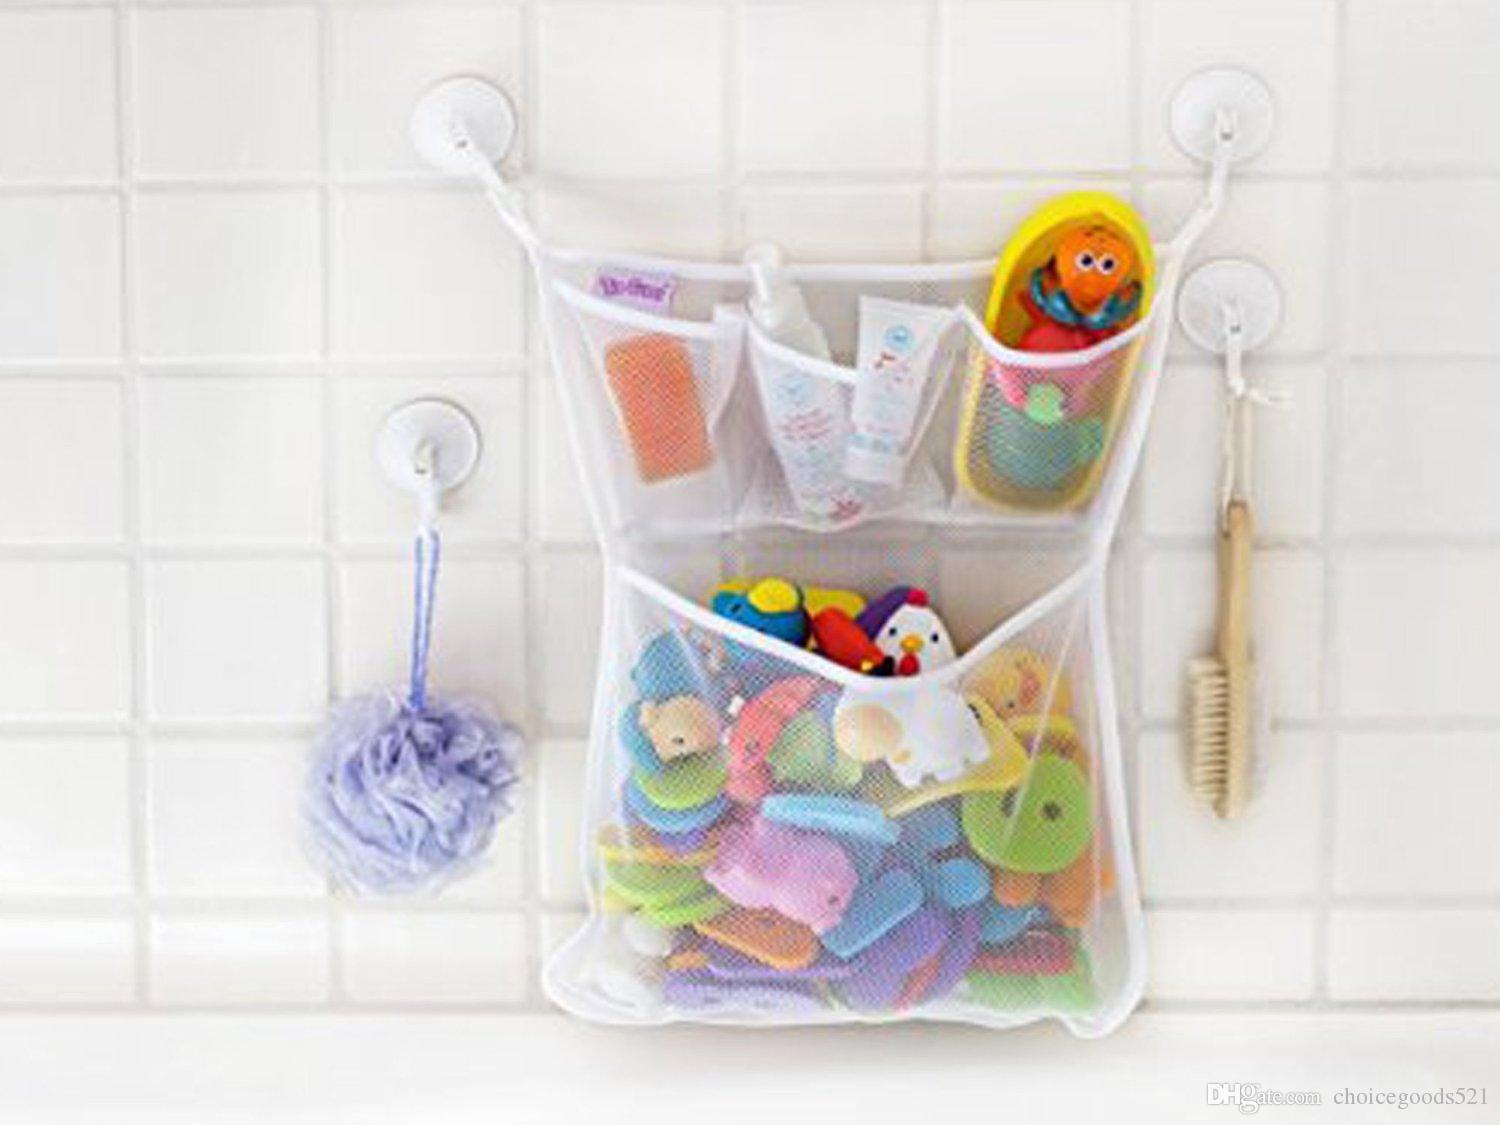 Baby Badewanne Toys R Us Baby Bathroom Mesh Bath Bag Storage Bag Baby Bath Bathtub Toy Mesh Net Storage Bag Organizer Holder For Home